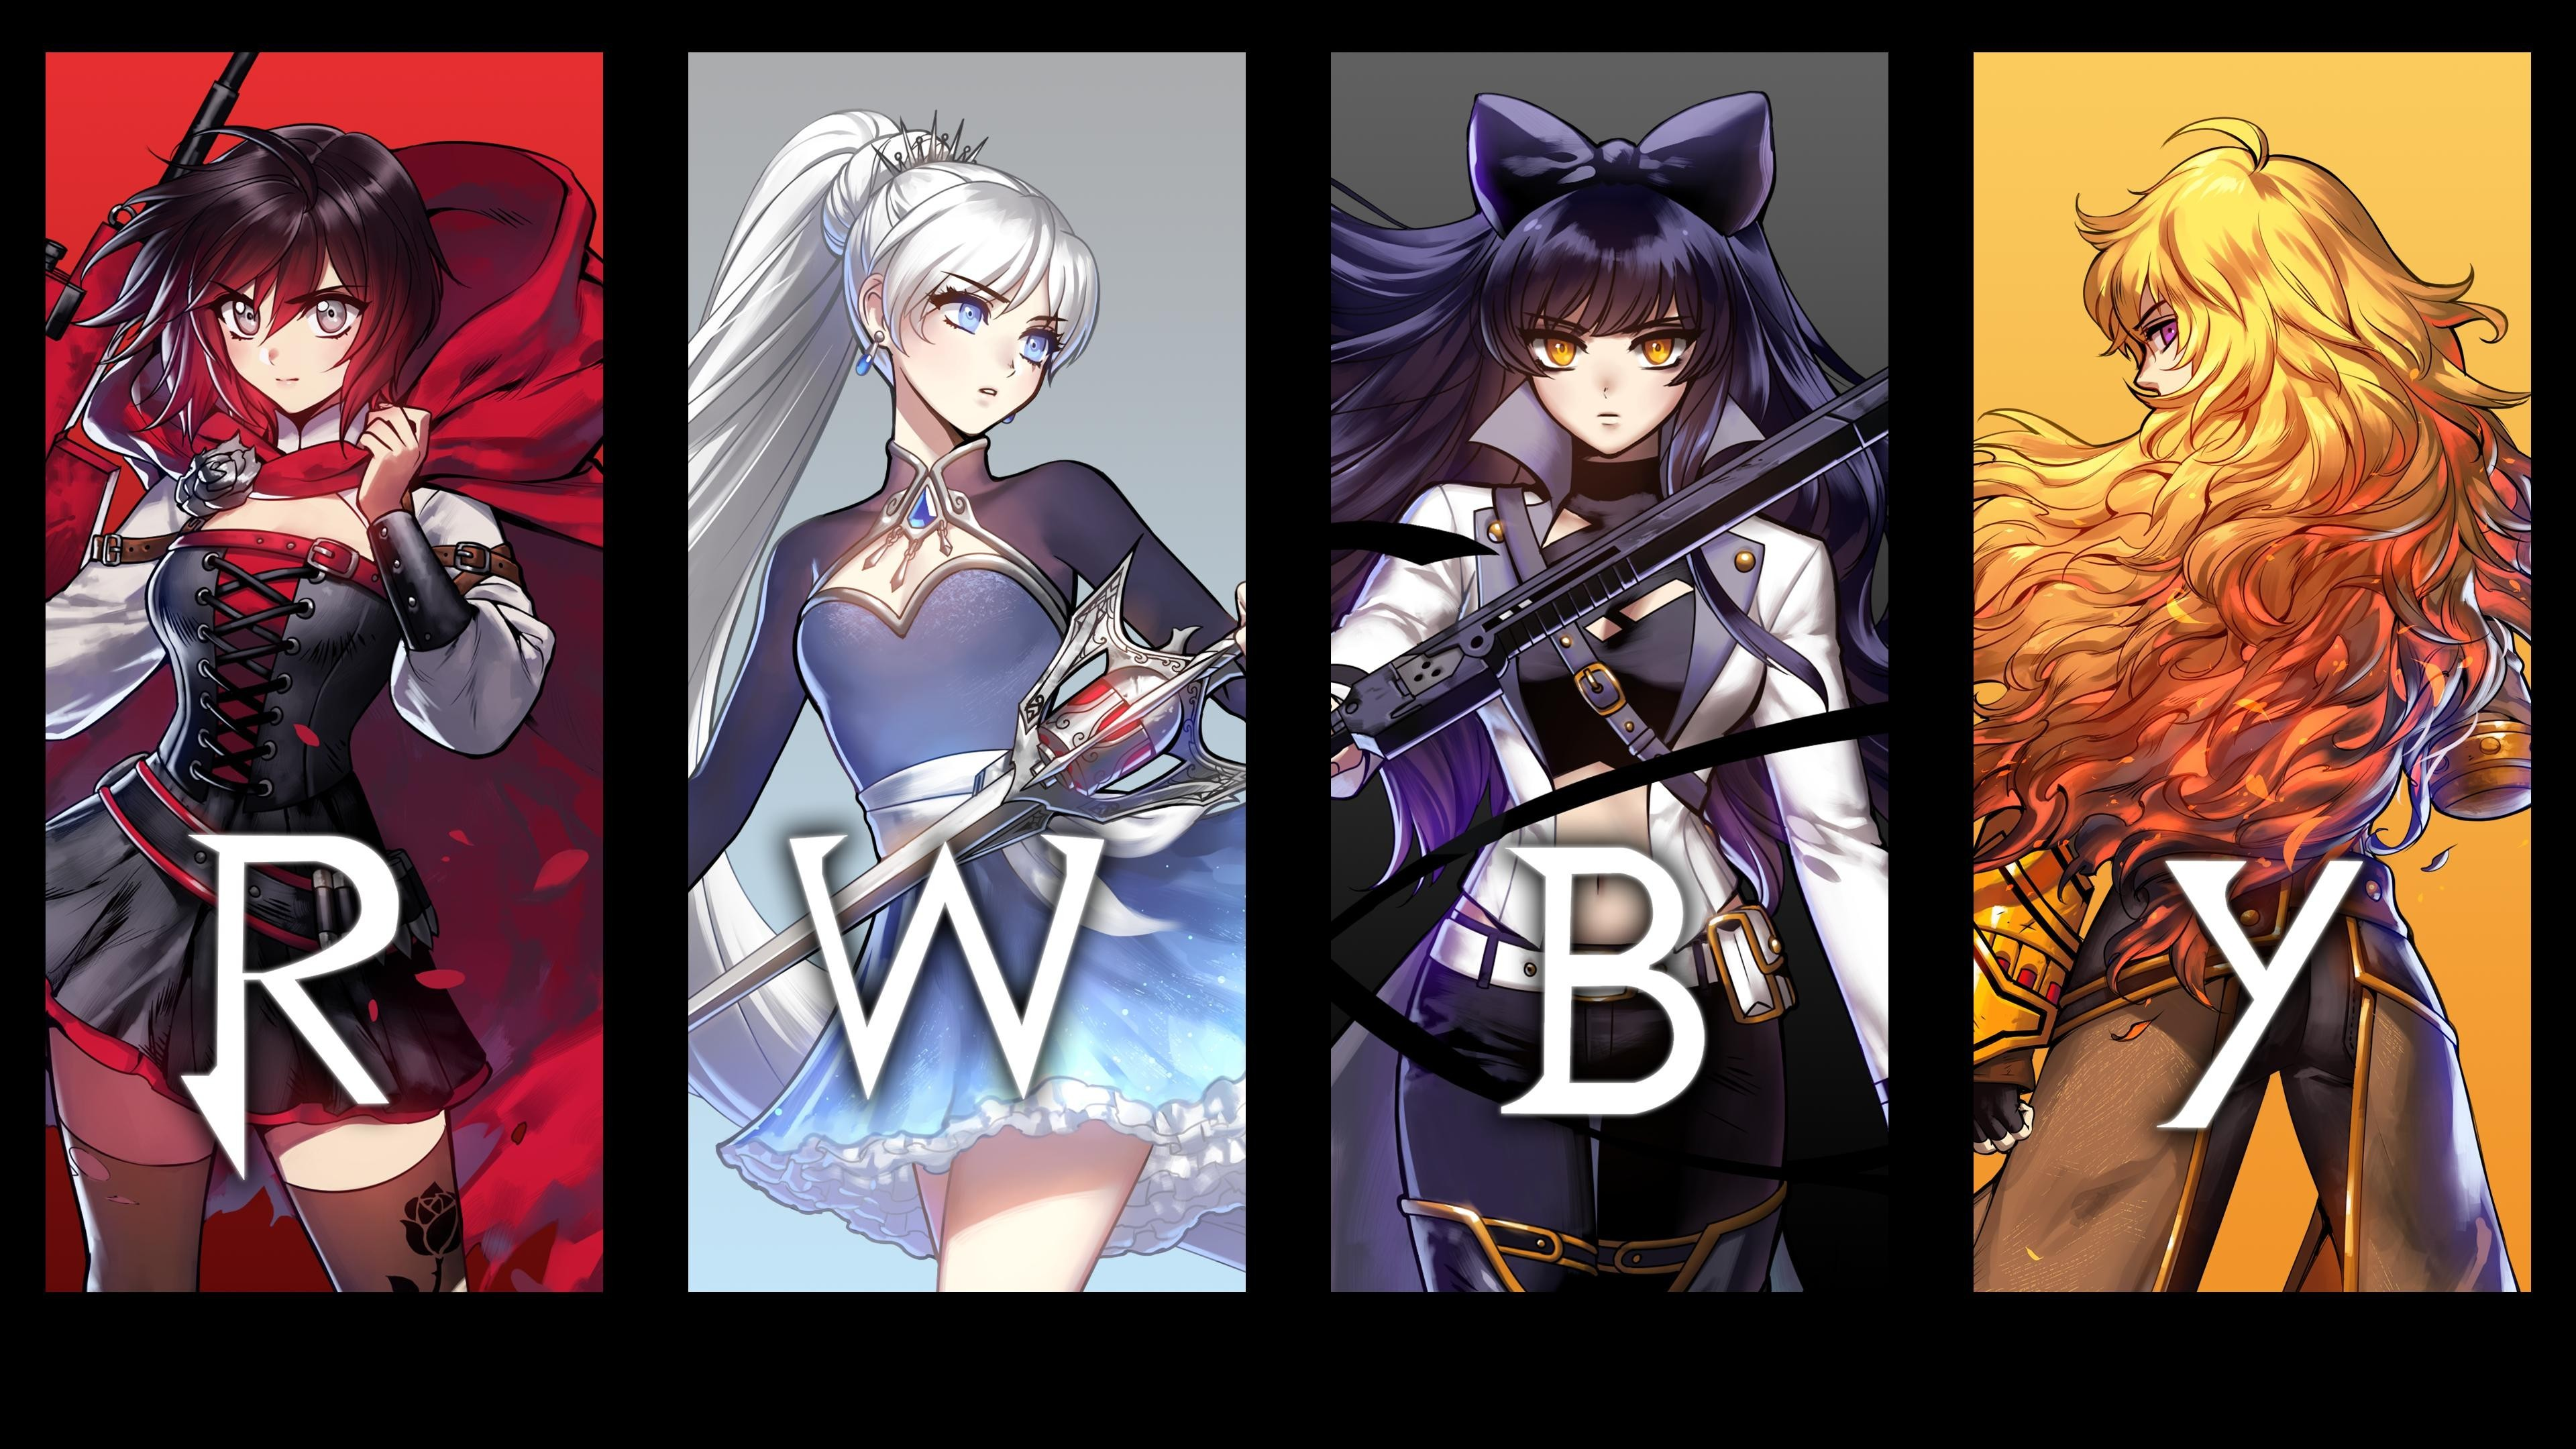 Res: 3840x2160, rwby-wallpaper-all-characters-38-WTG200630398